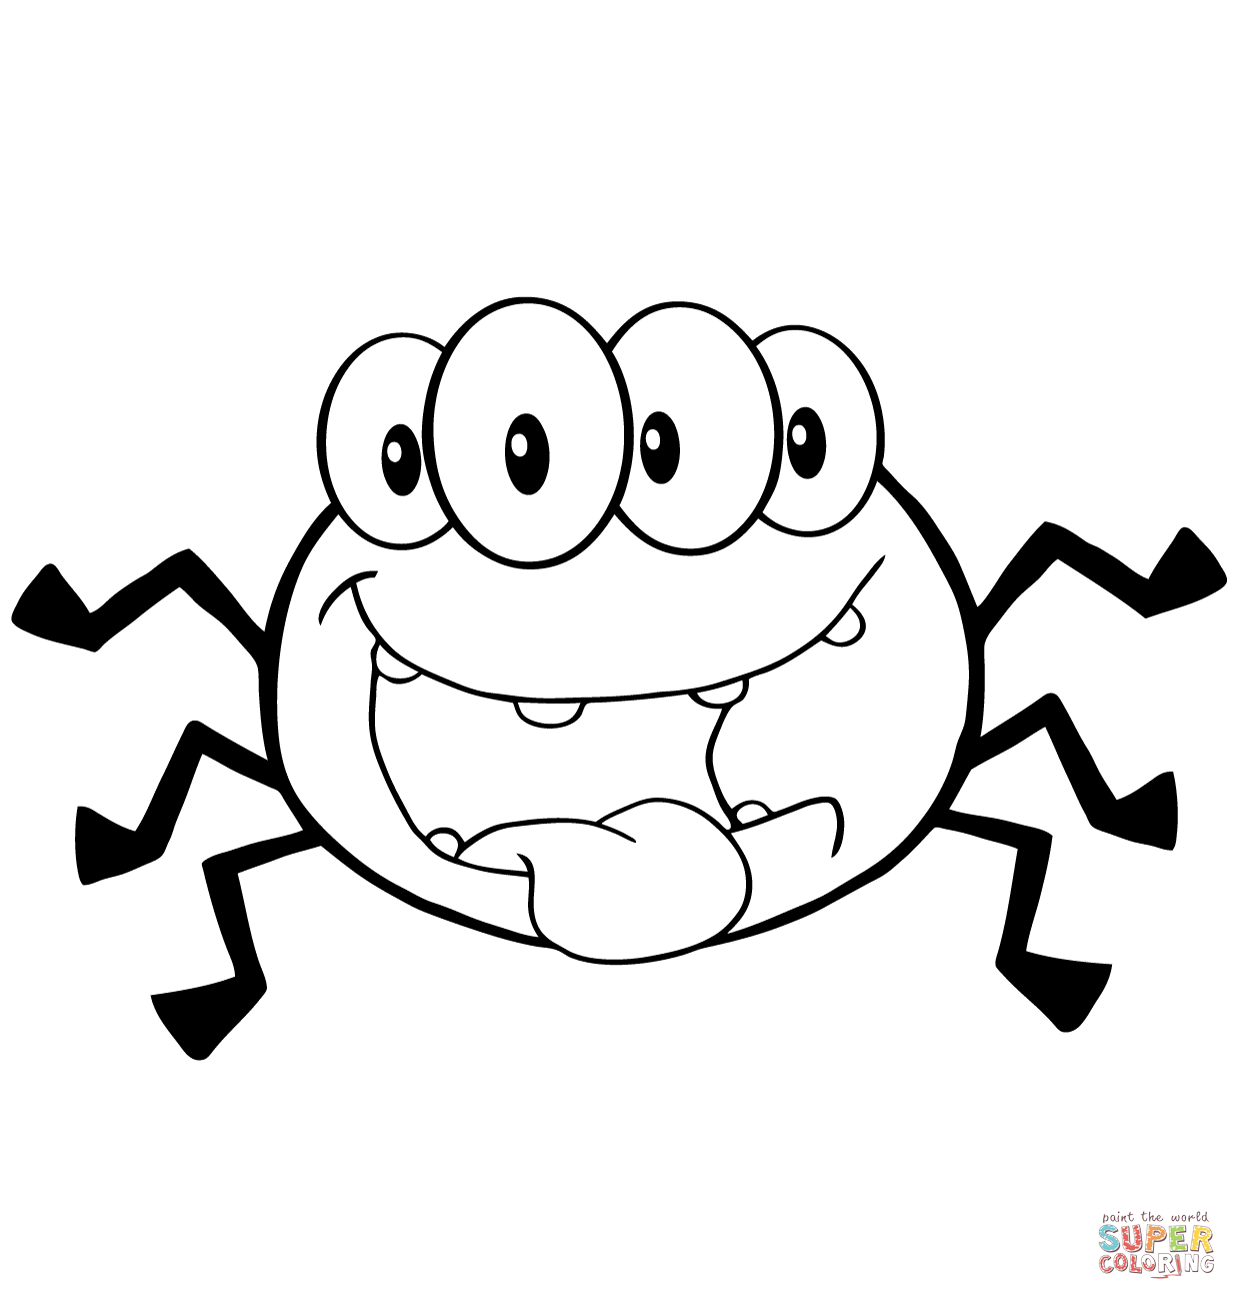 1237x1300 Happy Cartoon Spider Coloring Page Free Printable Coloring Pages